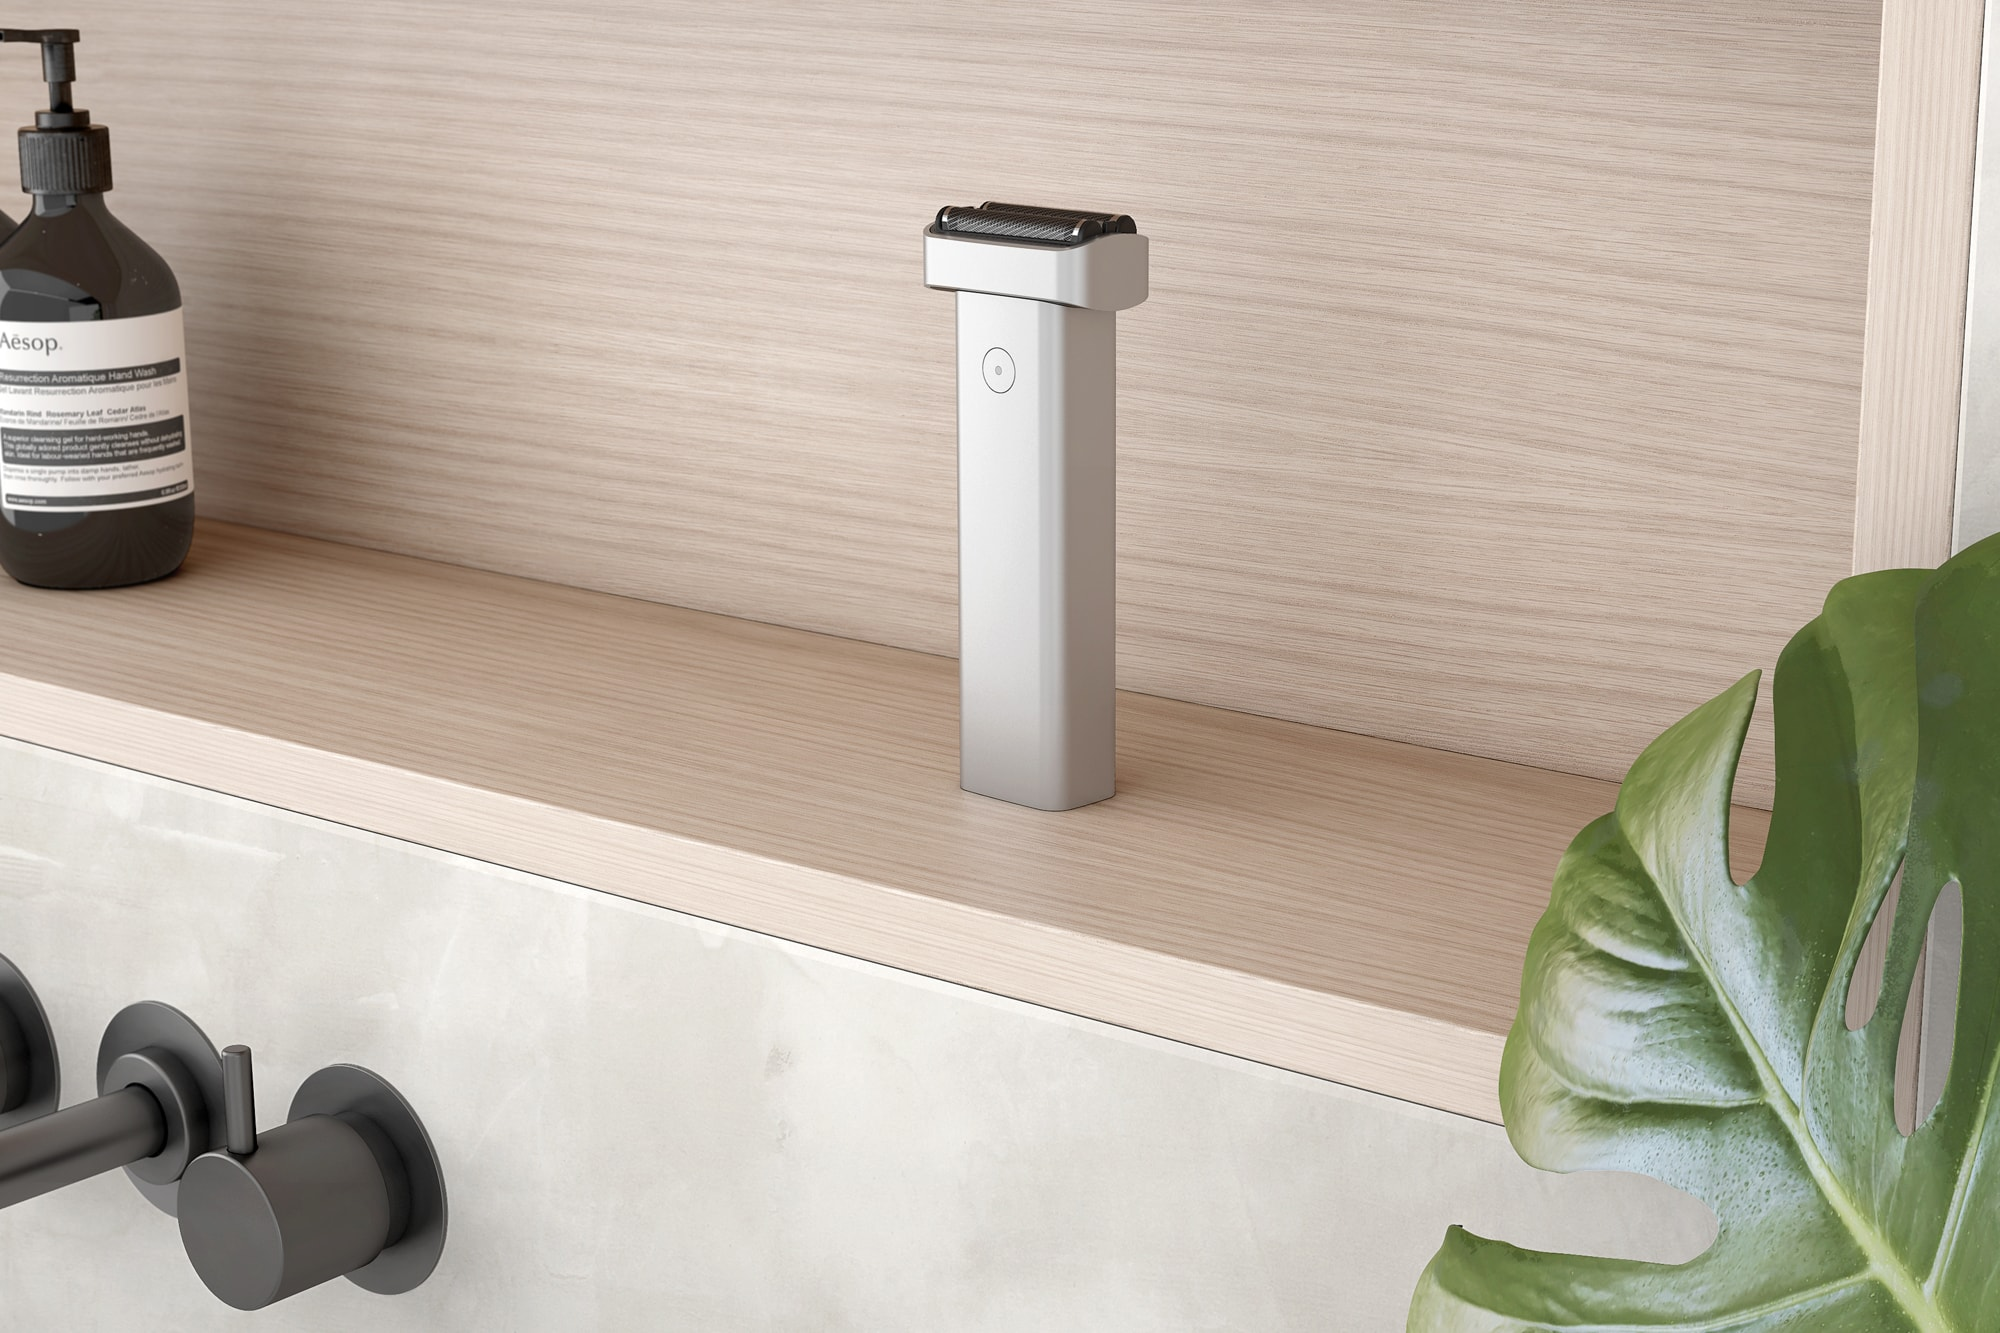 Extrusion Shaver standing on a wooden shelf in a bathroom.